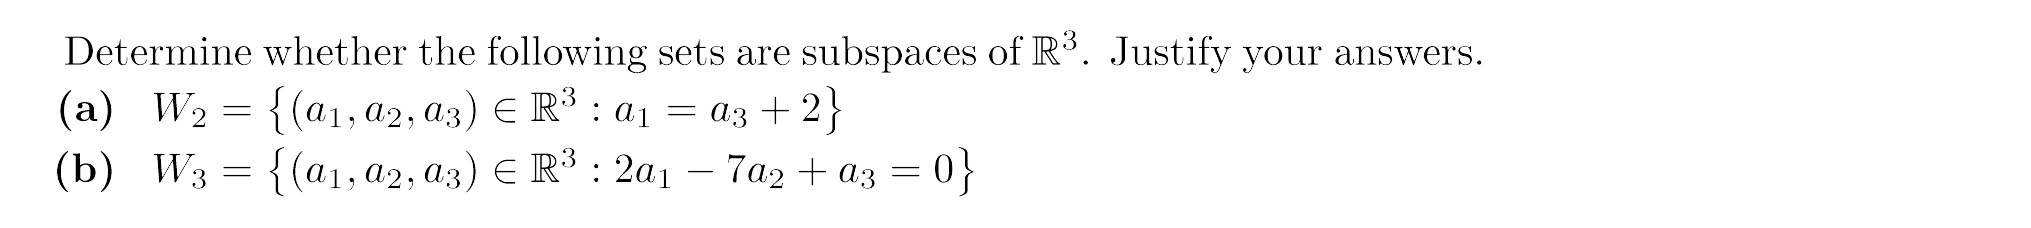 Determine Whether The Following Sets Are Subspaces... | Chegg.com